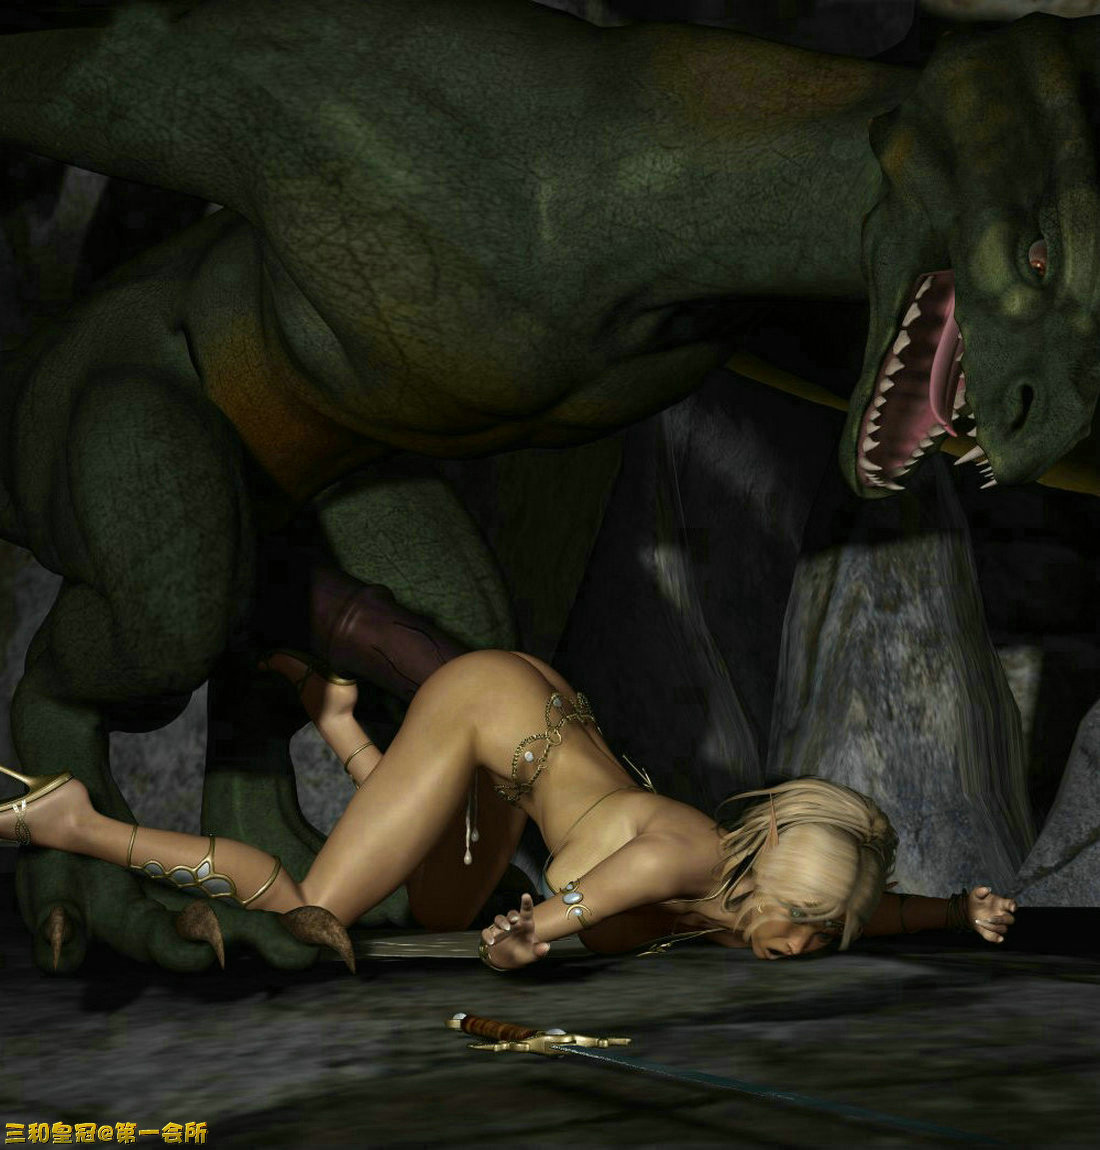 Sexy girl getting fucked by a dragon porn scenes